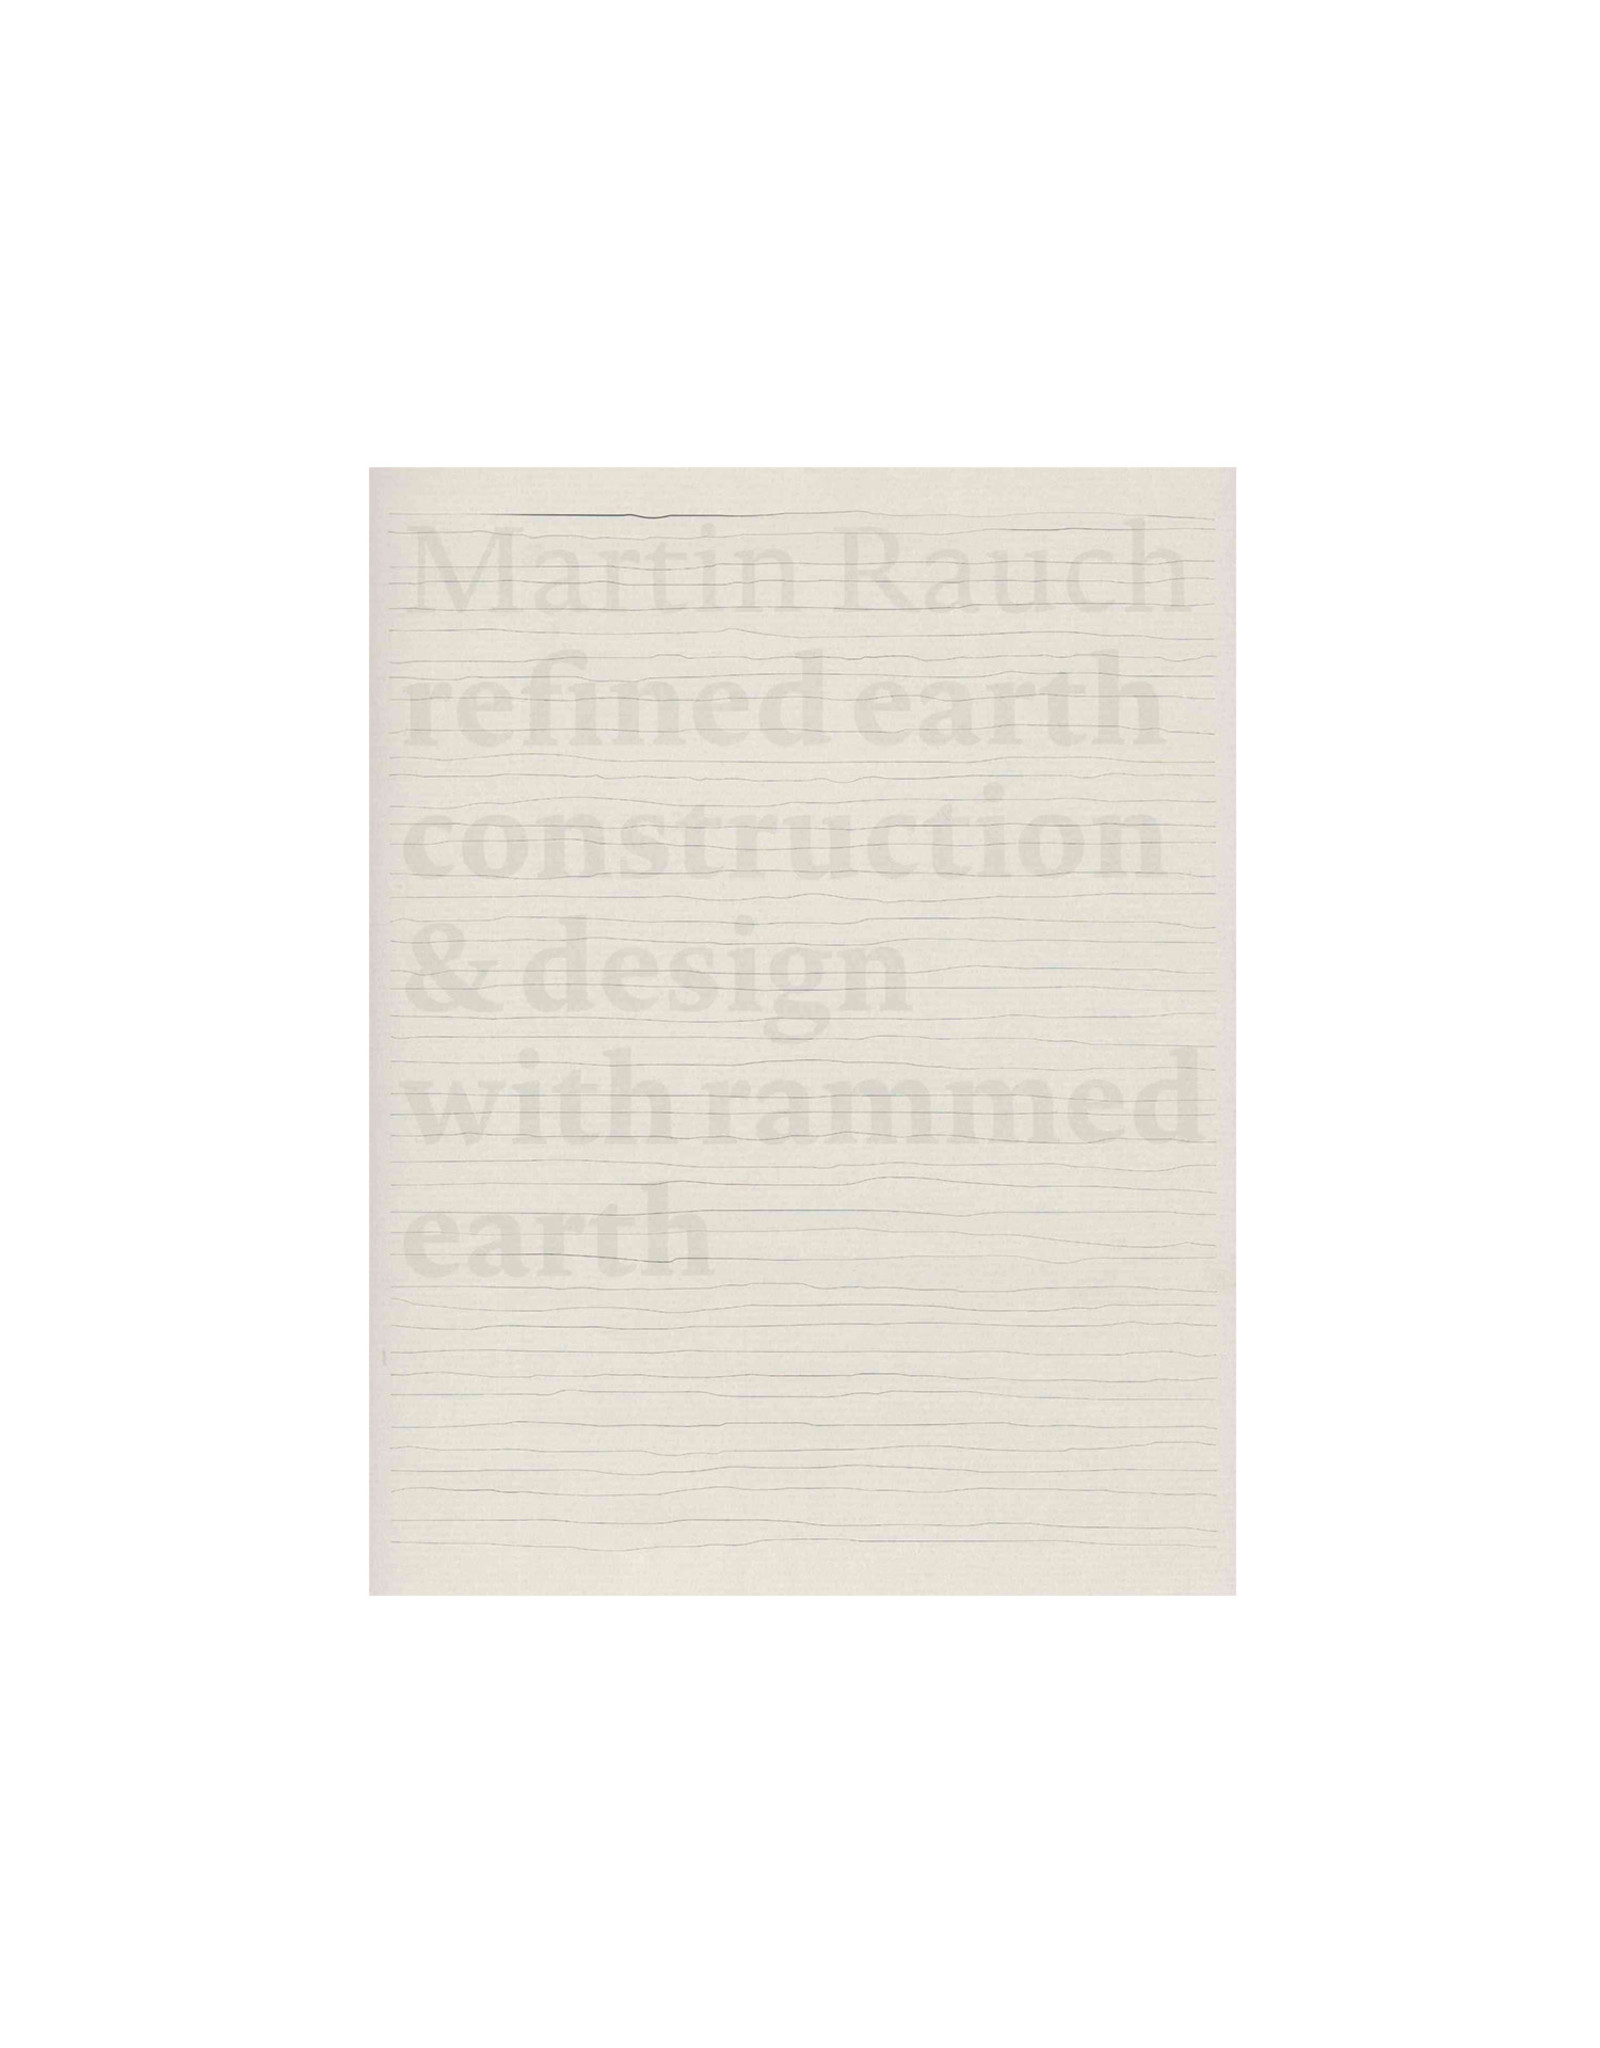 Martin Rauch: Refined Earth Construction and Design with Rammed Earth